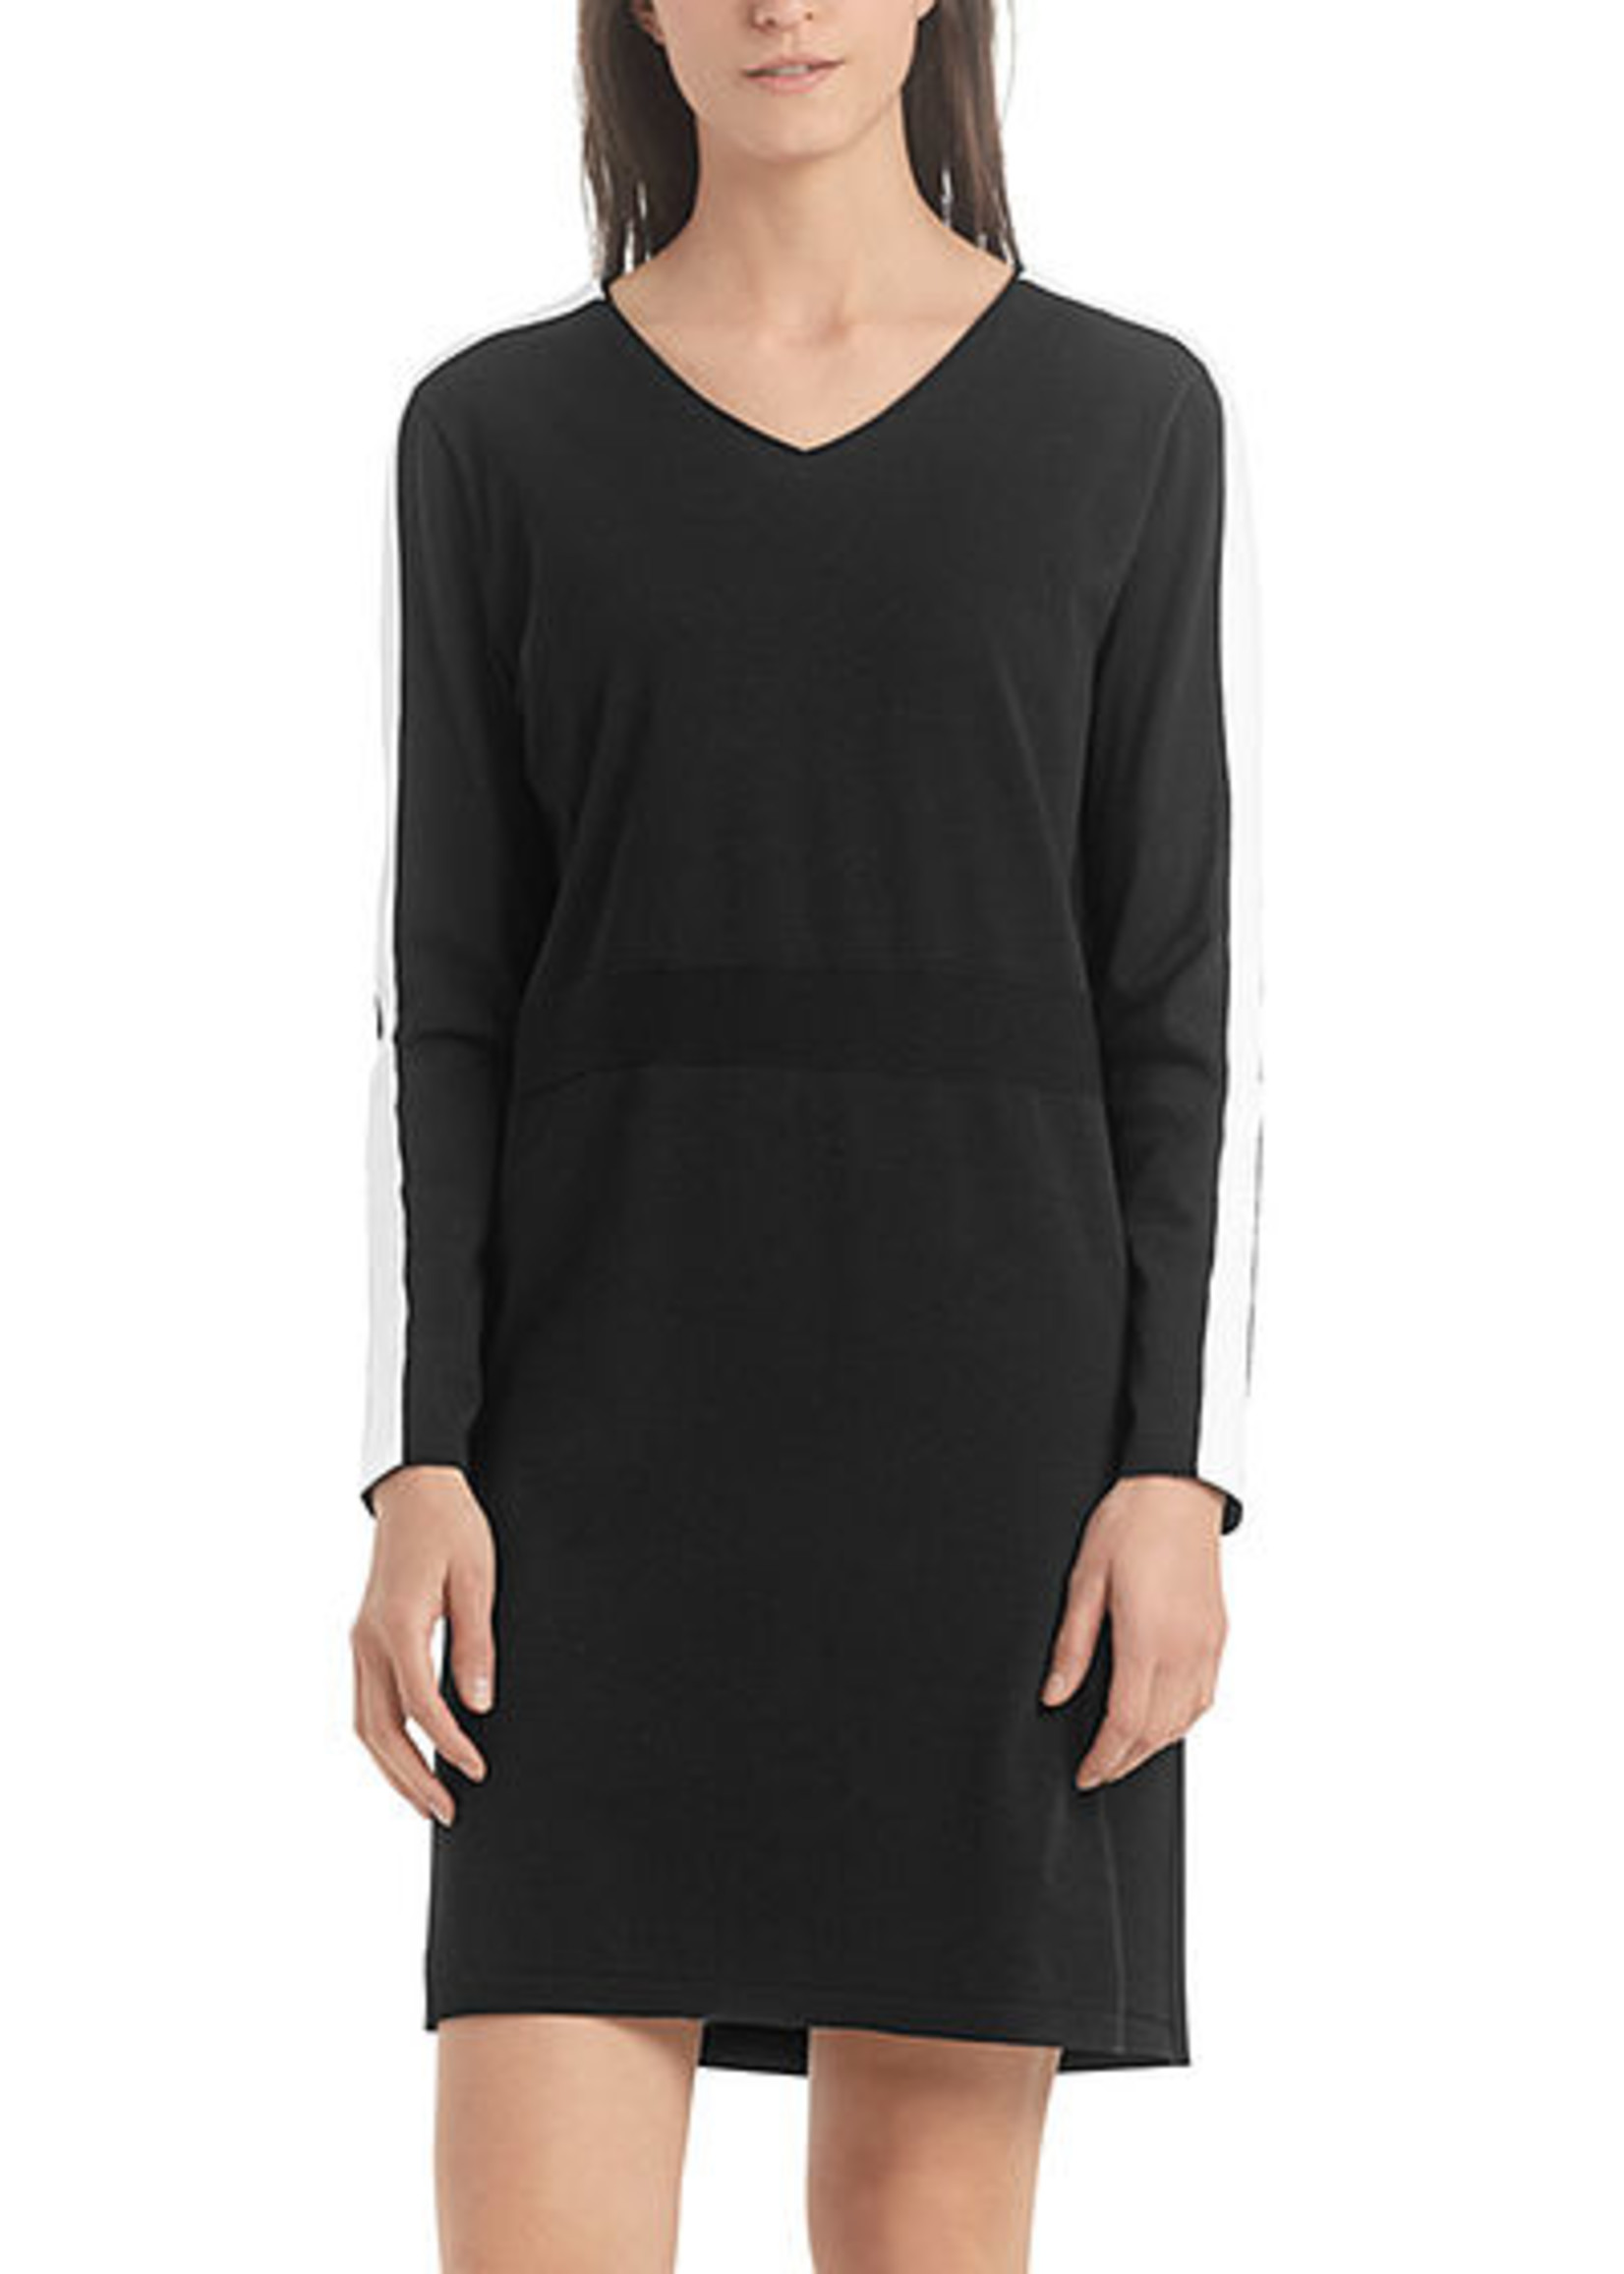 Marccain Sports Jurk RS 21.37 M34 black and white